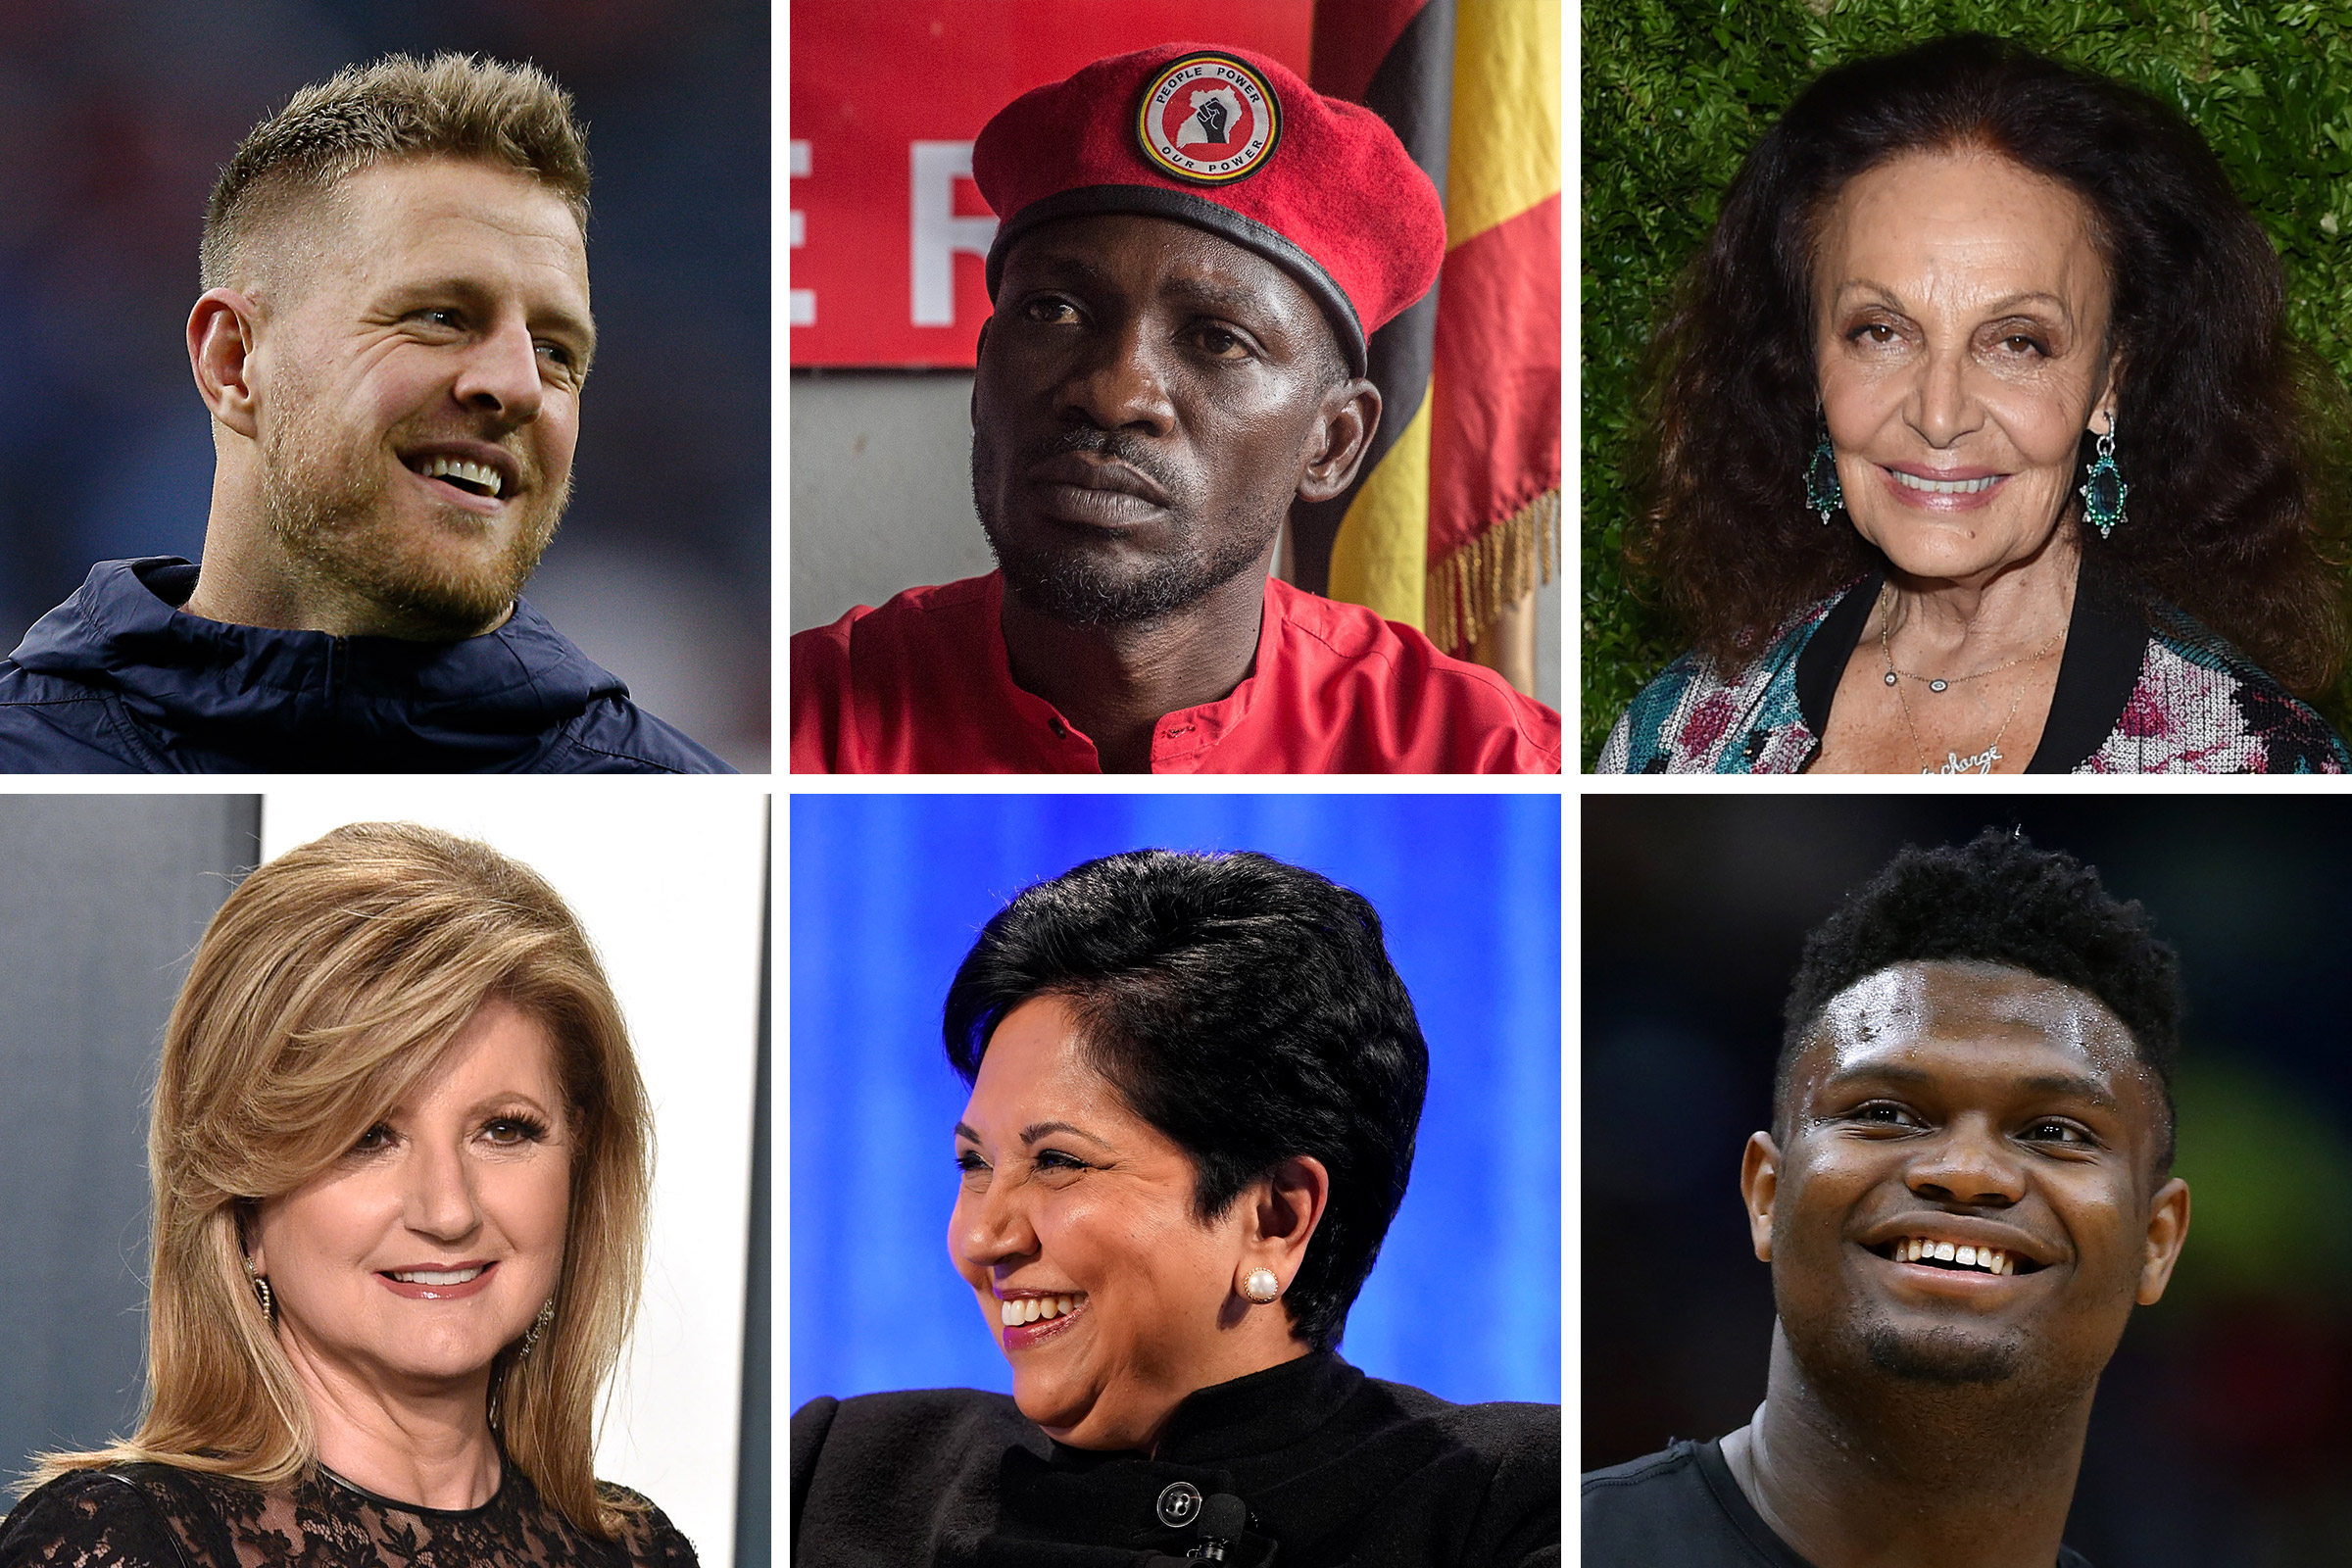 Clockwise from Top Left: JJ Watt, Bobi Wine, Diane von Furstenberg, Zion Williamson, Indra Nooyi, Arianna Huffington